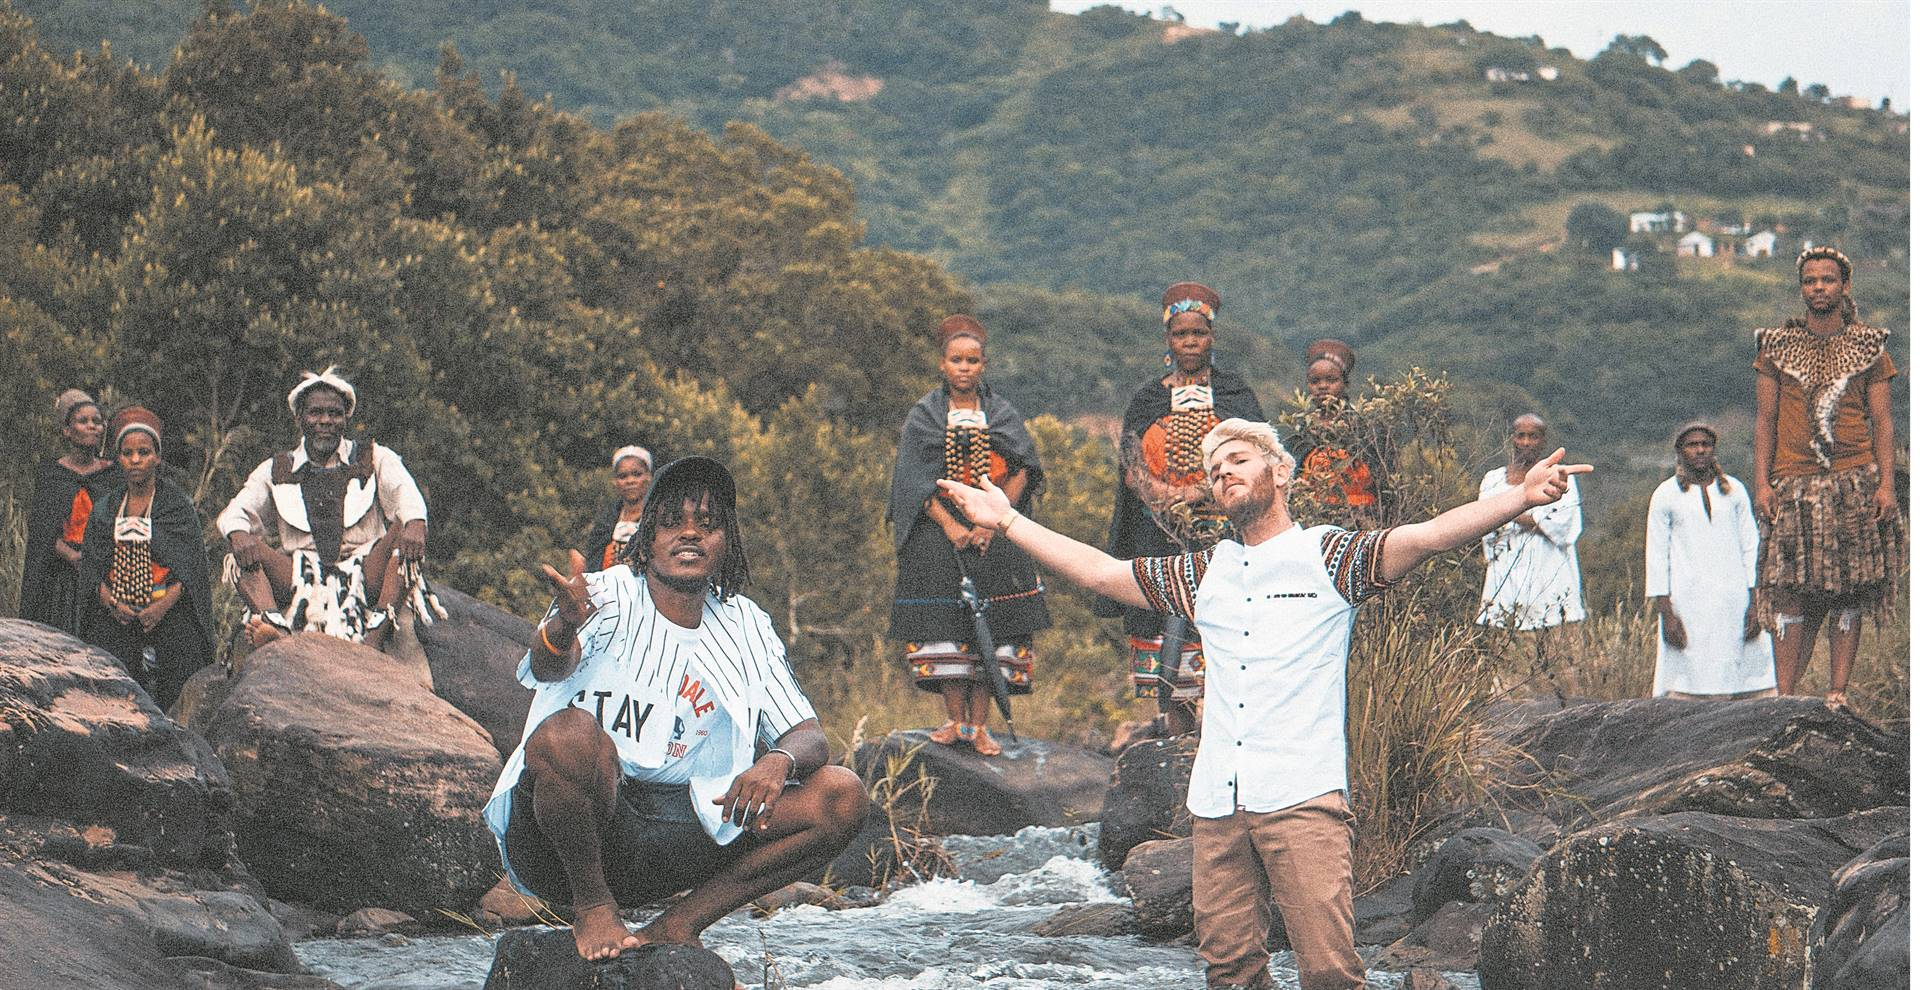 Singers Kyle Deutsch and Aewon Wolf share their love of KZN in a new song and music video.